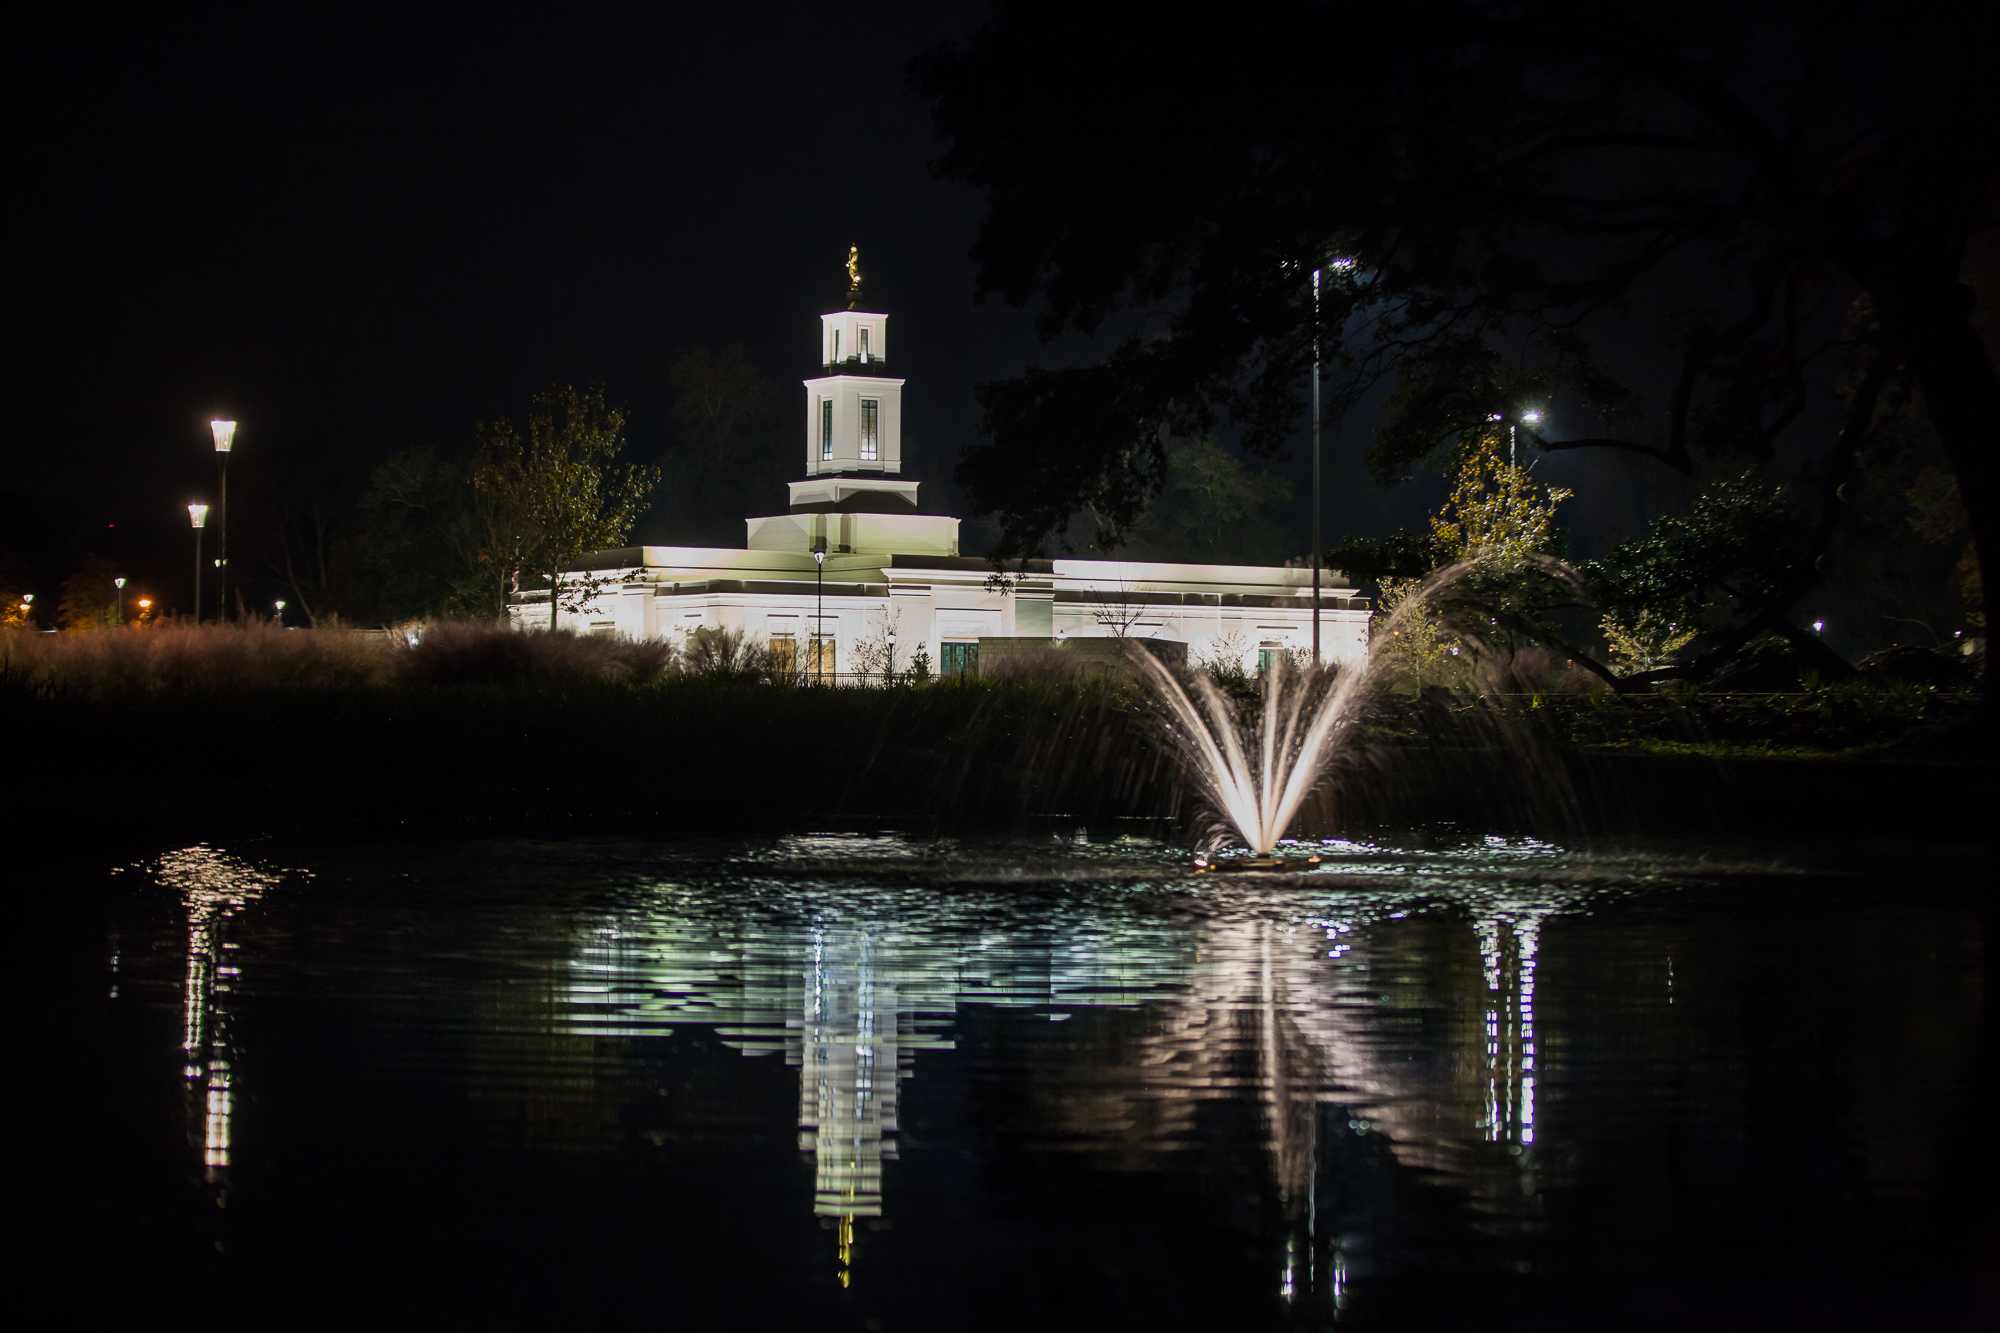 The Baton Rouge Louisiana Temple of The Church of Jesus Christ of Latter-day Saints is reflected in a nearby water feature on Saturday, Nov. 16, 2019, the evening before its rededication.